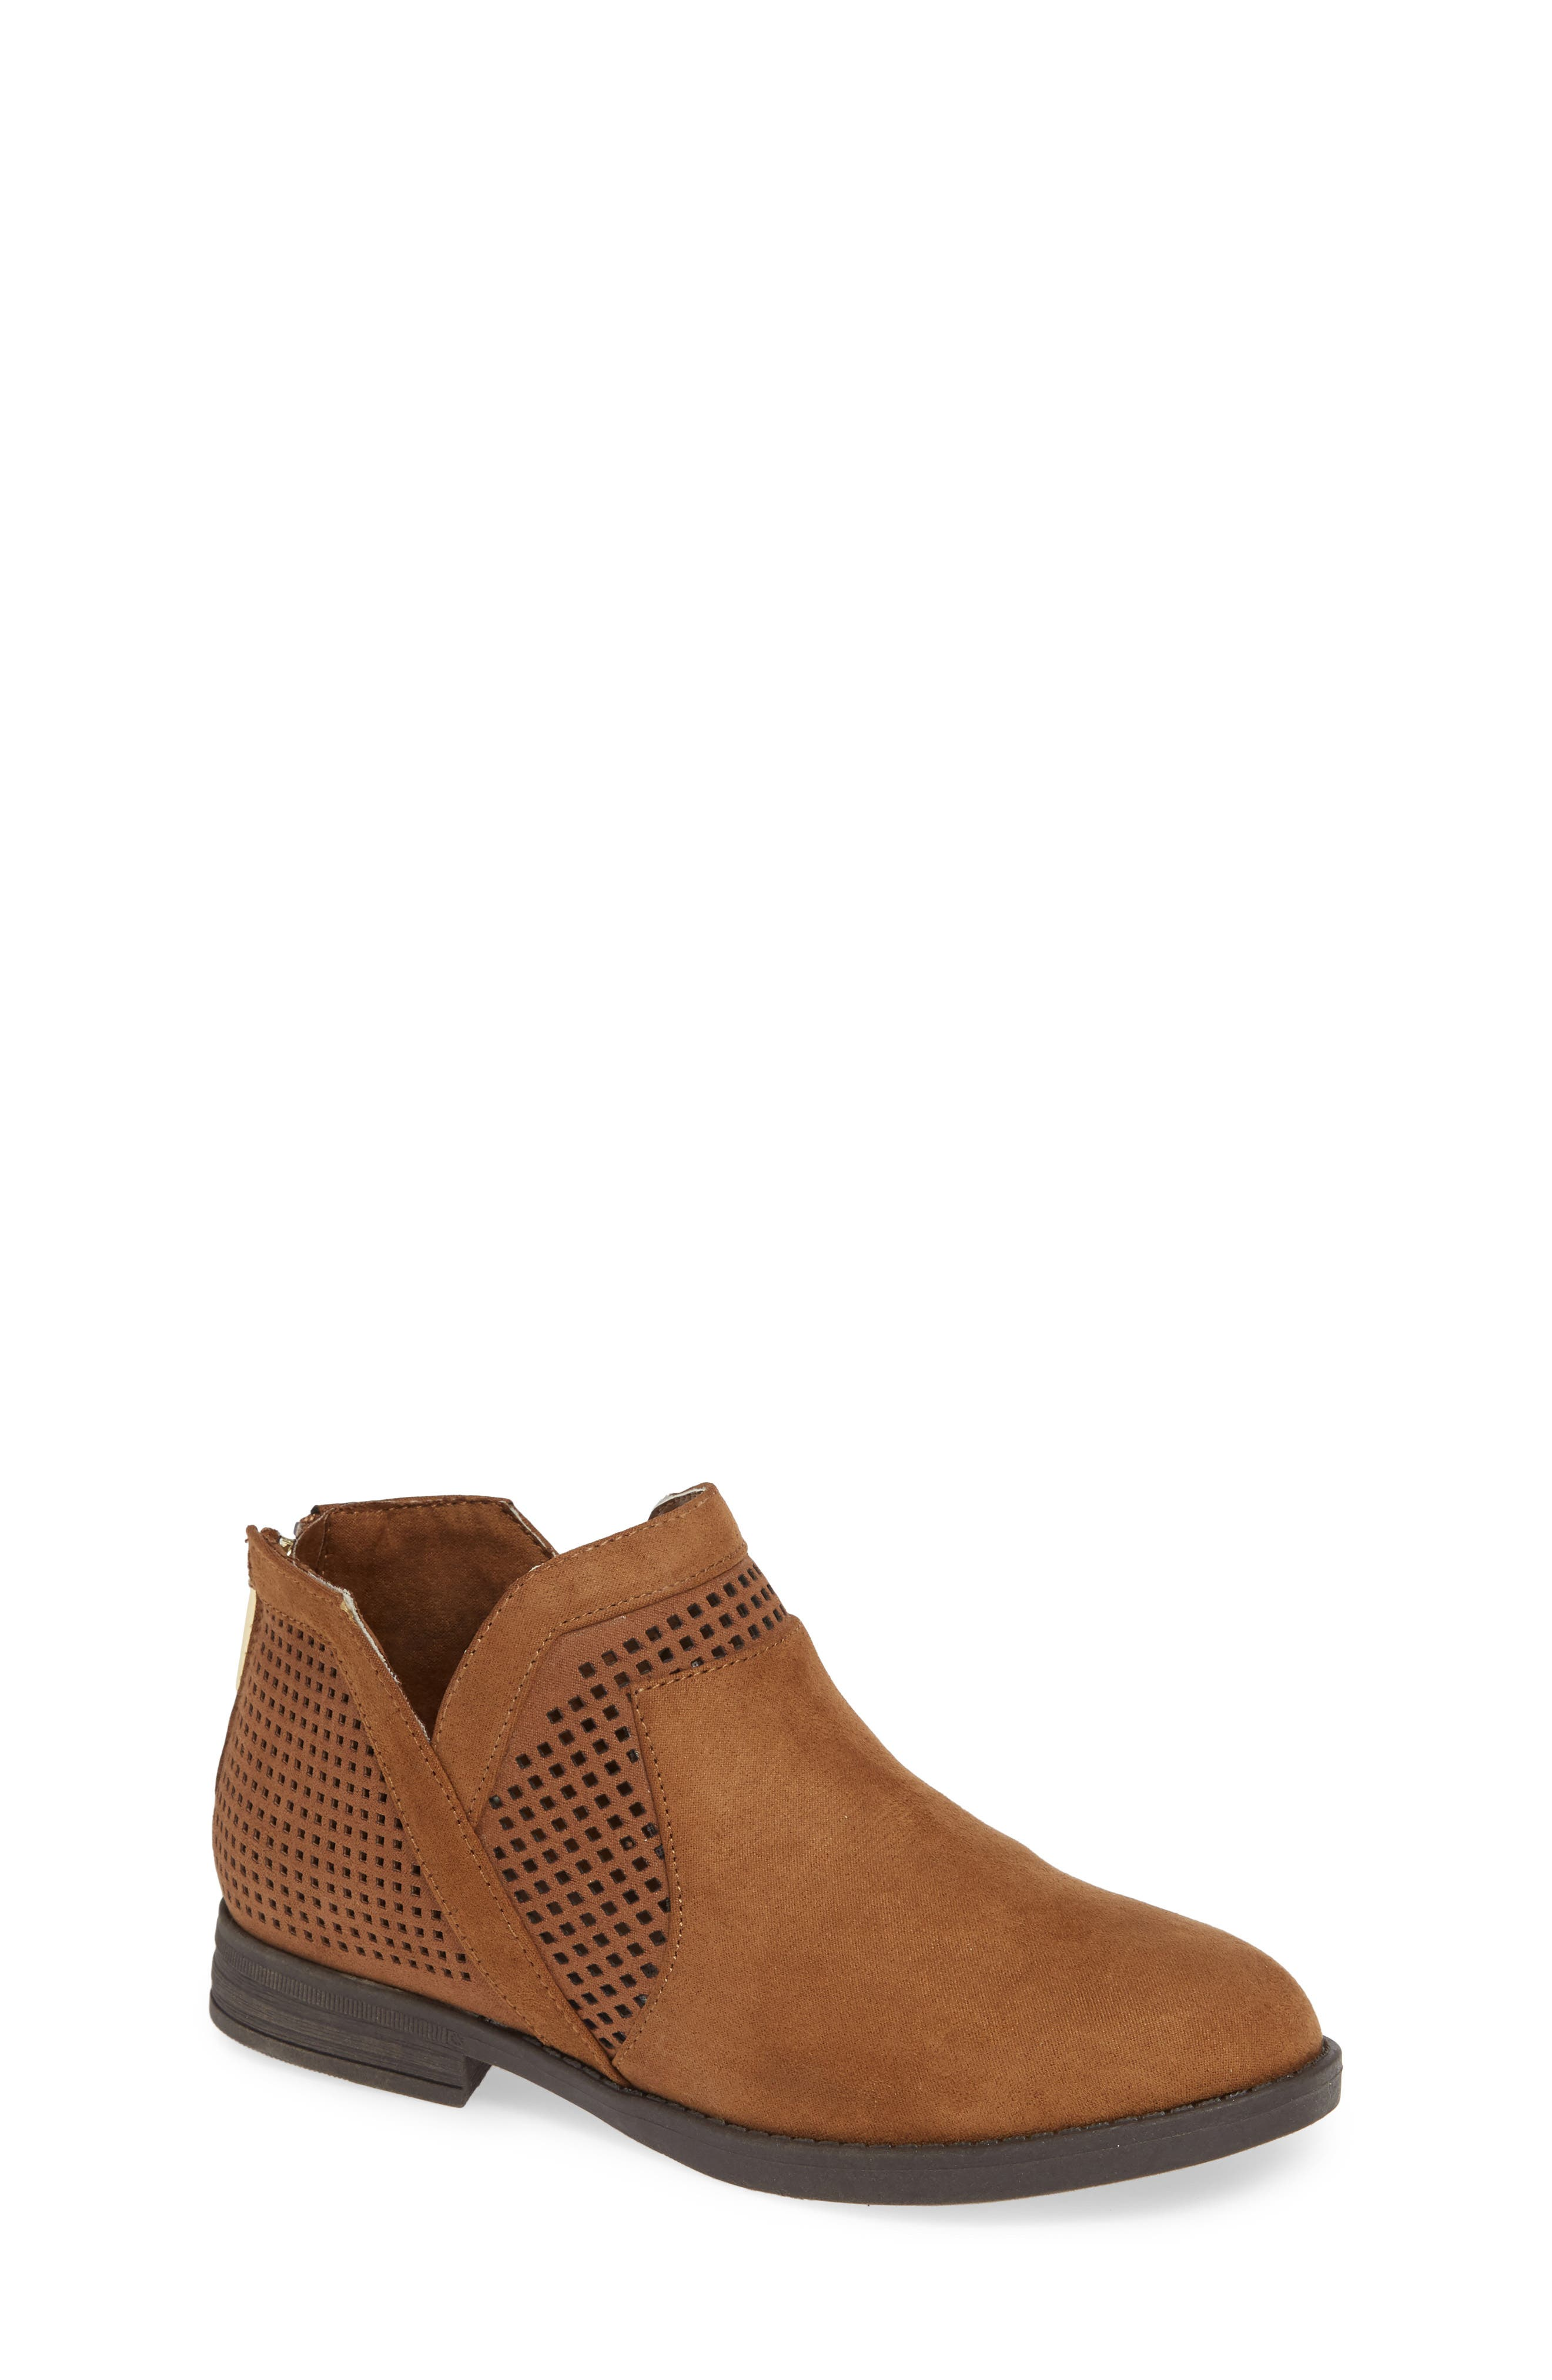 Wild Westy Perforated Bootie,                             Main thumbnail 1, color,                             206